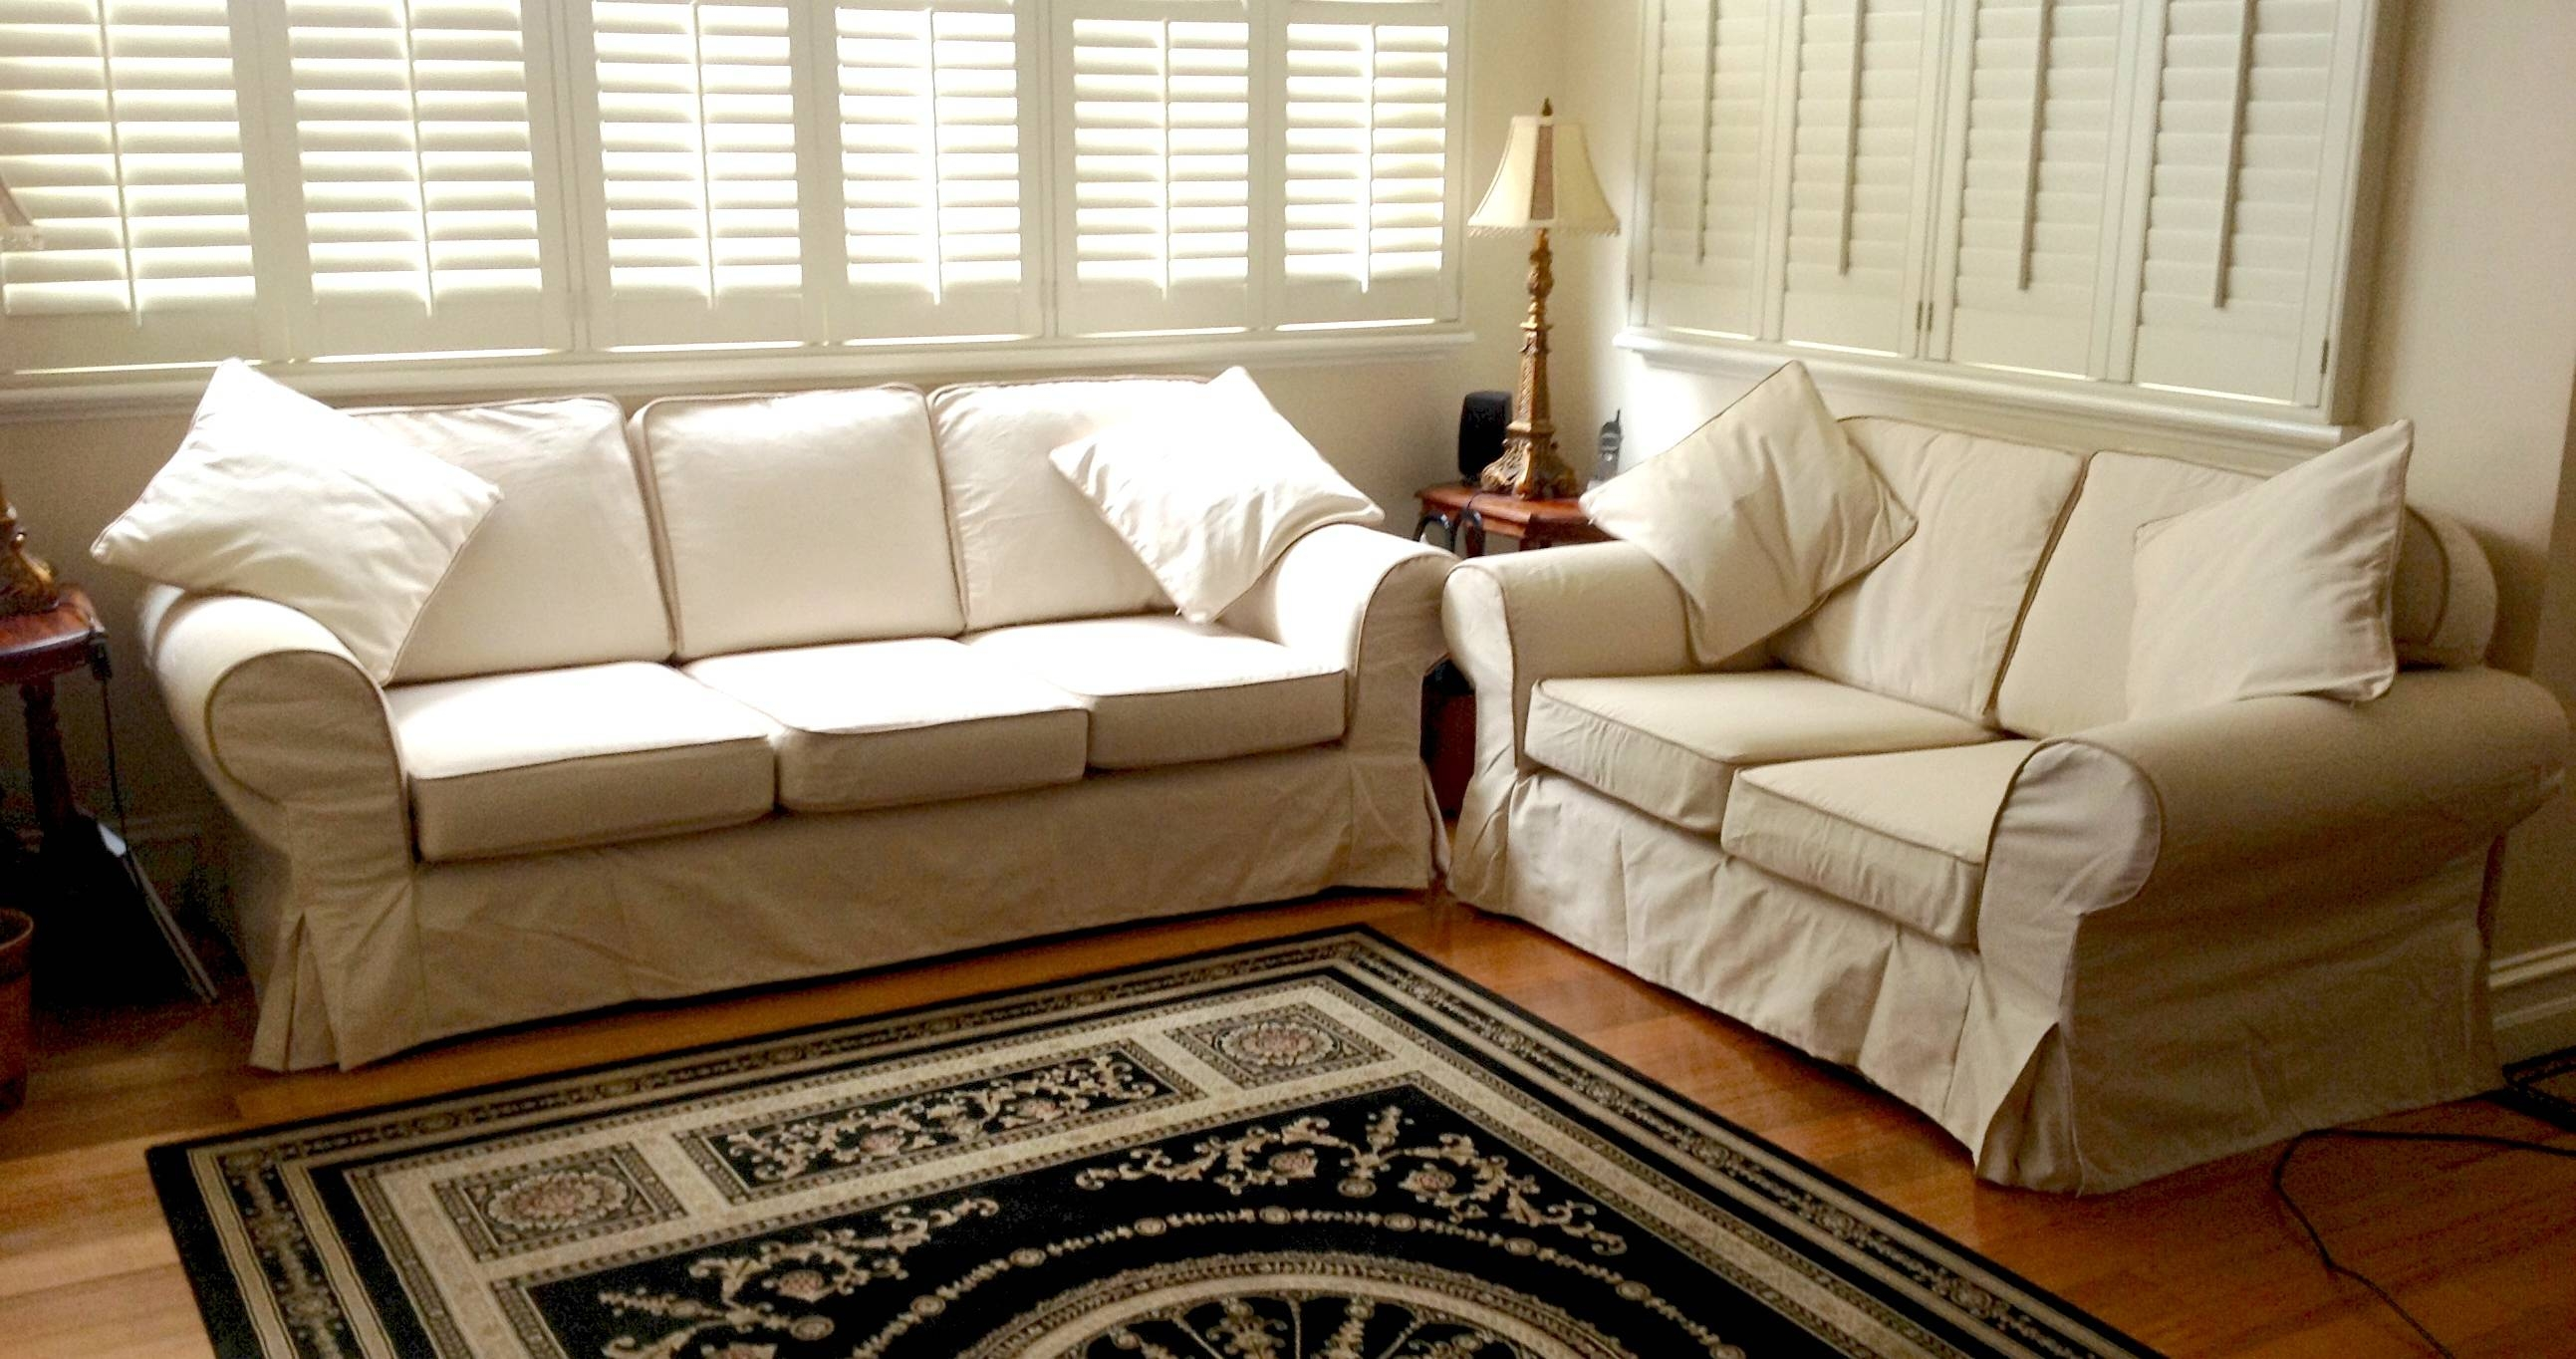 Custom Slipcovers And Couch Cover For Any Sofa Online inside Slip Covers For Love Seats (Image 2 of 15)